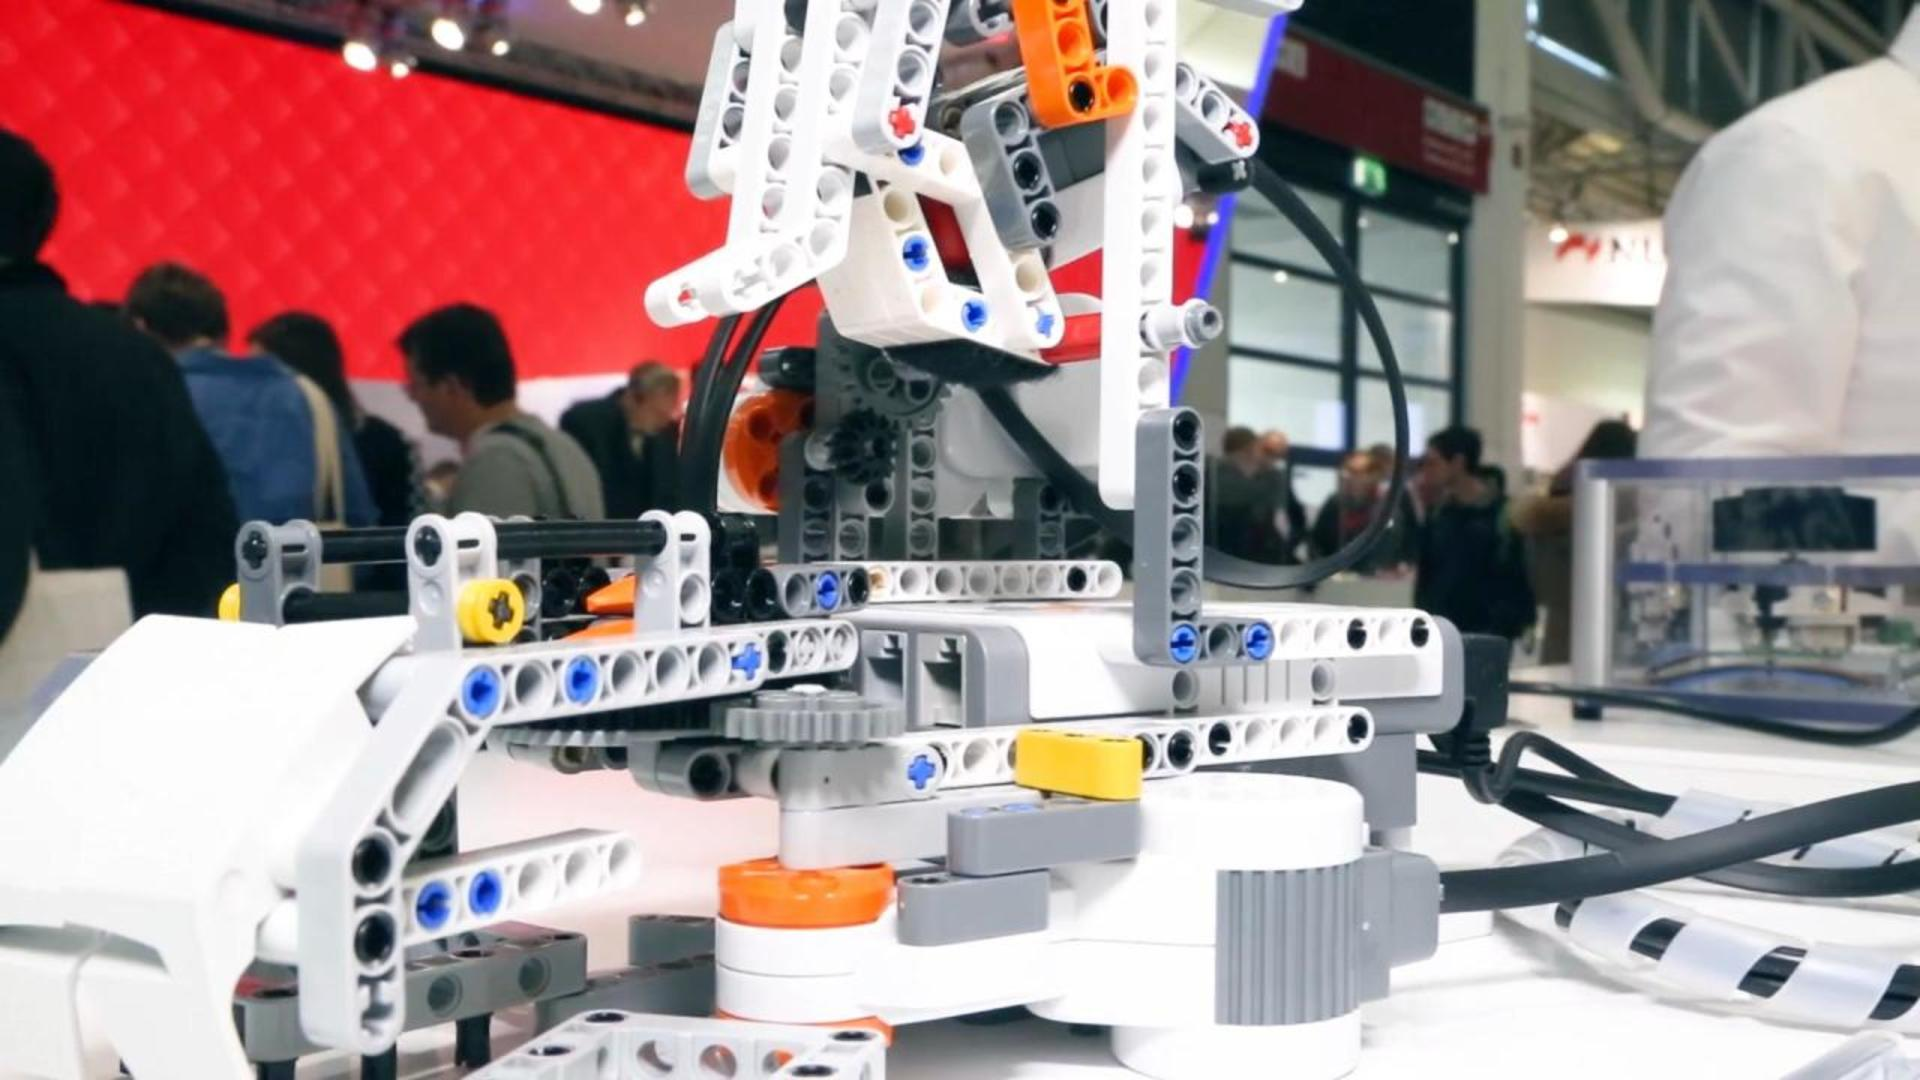 electronica 2016 - Security solutions for industrial automation